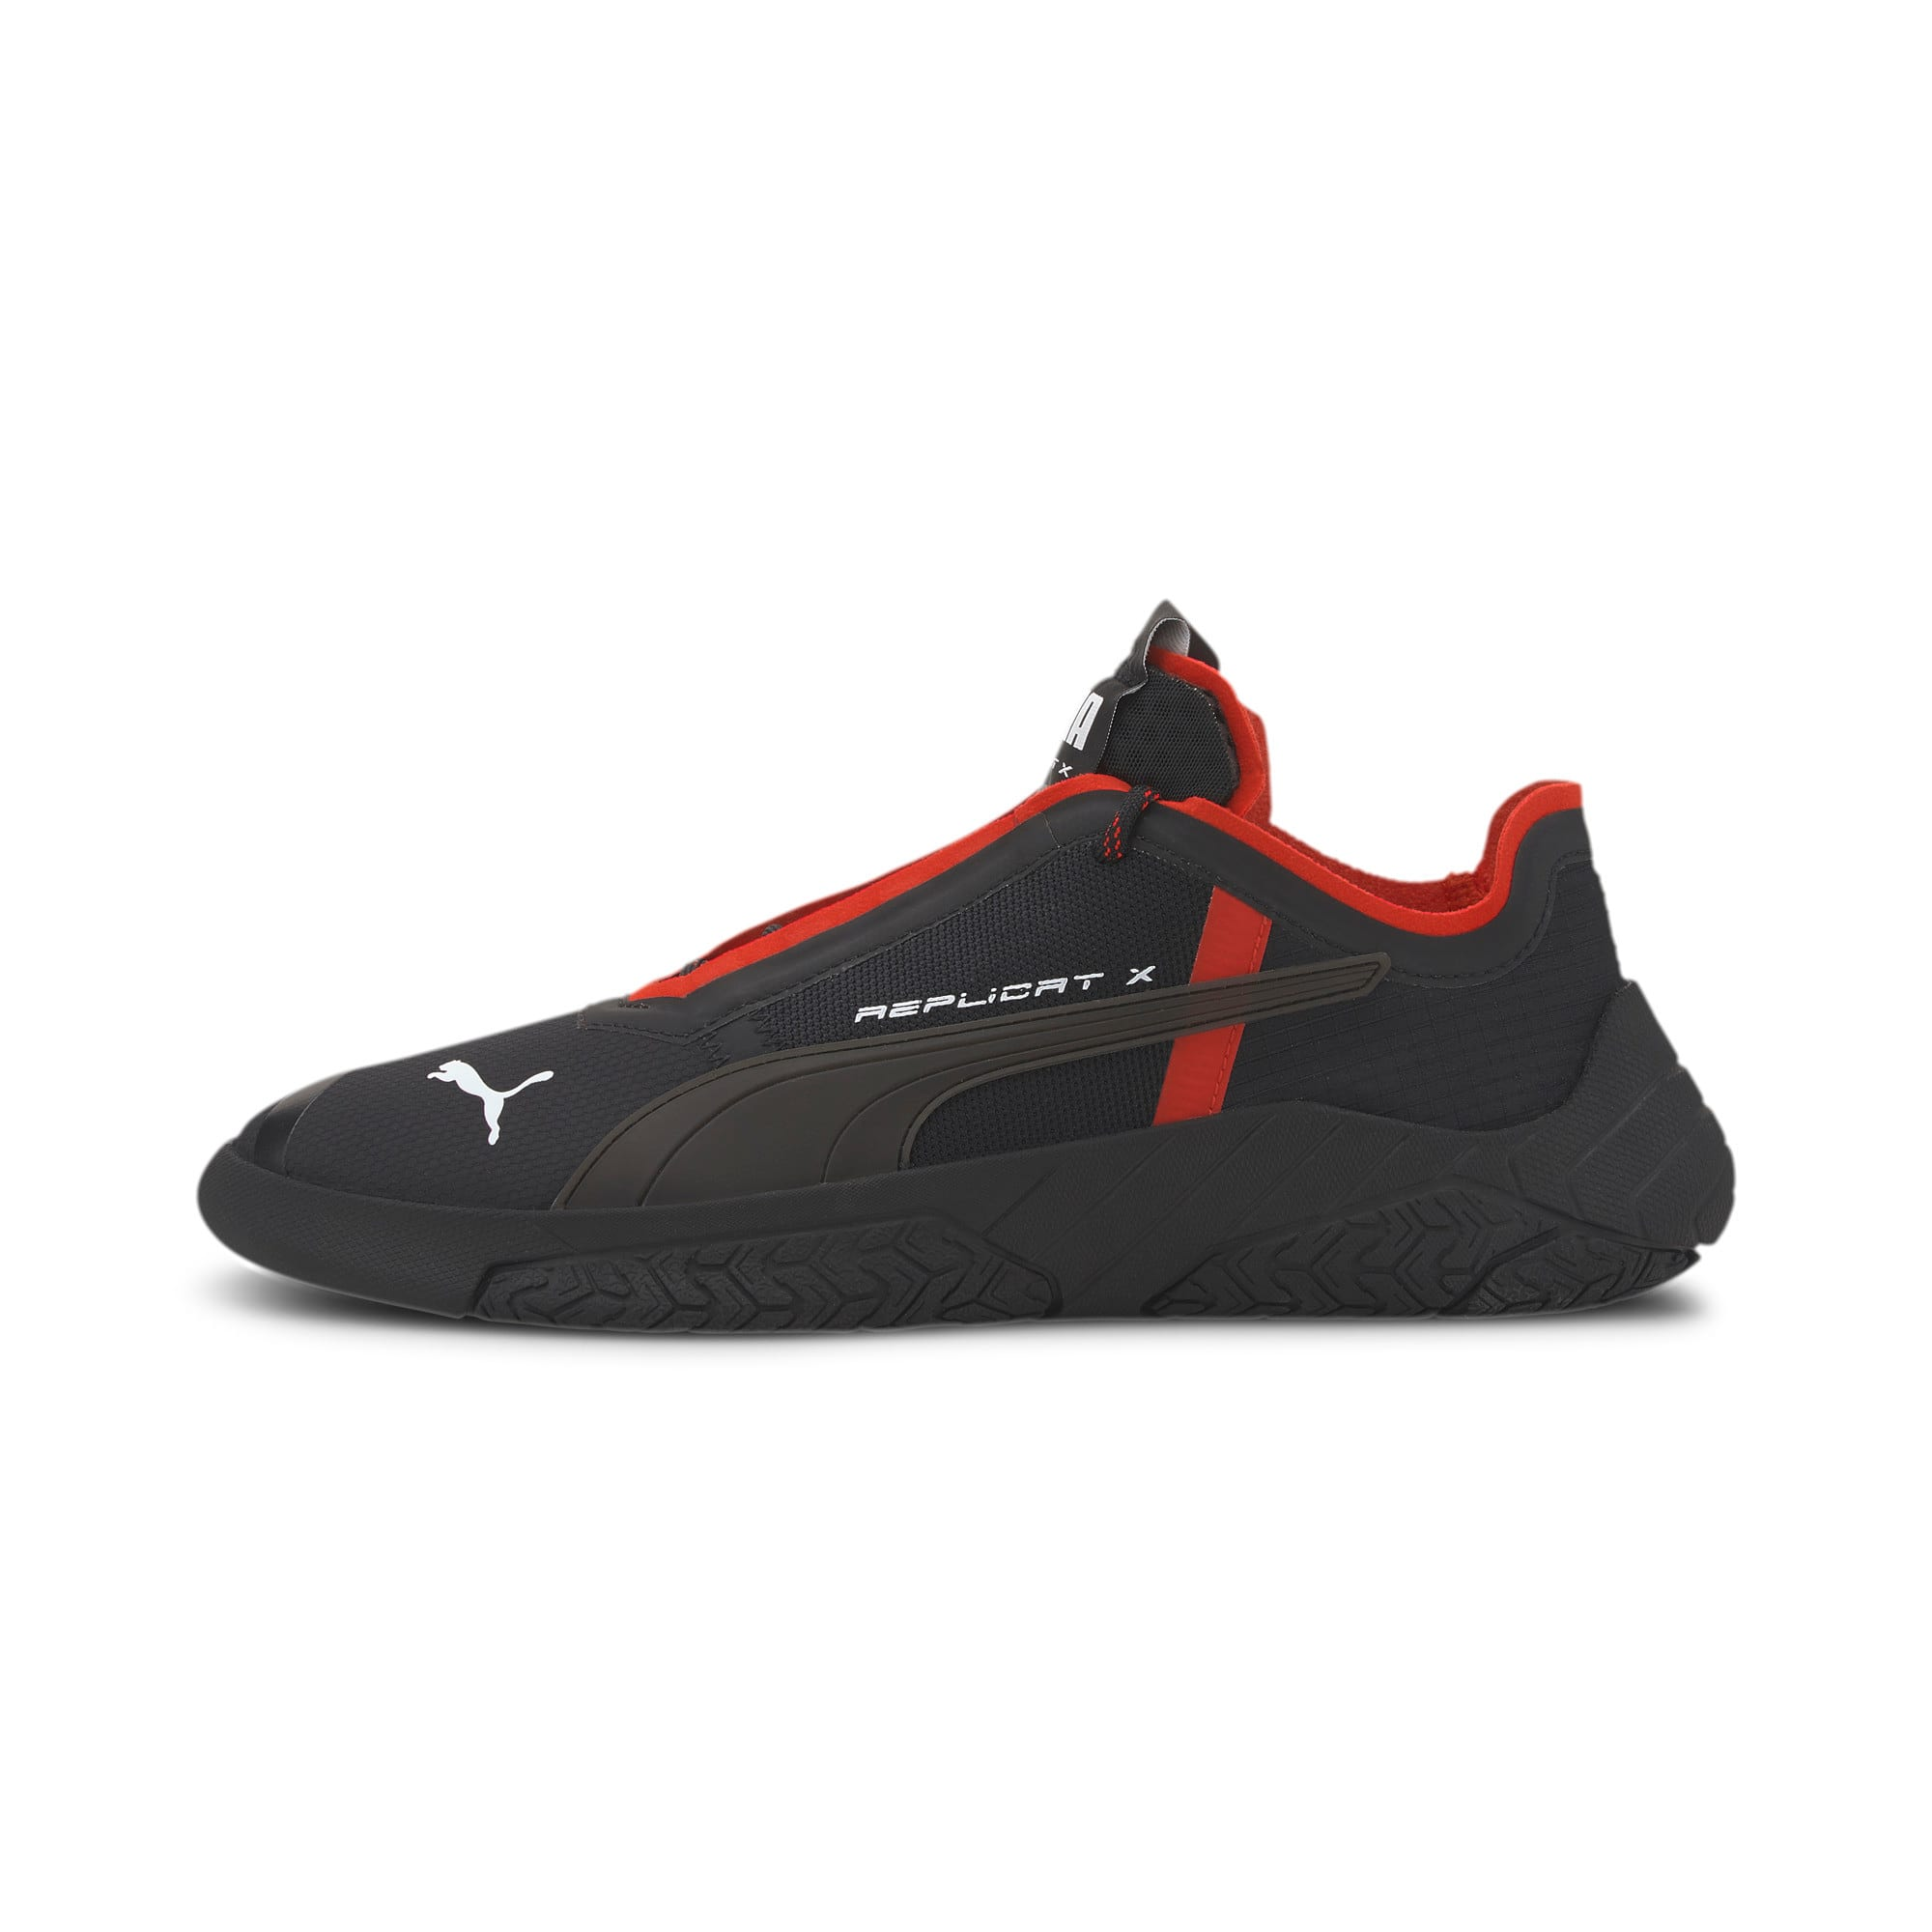 Thumbnail 1 of Replicat-X Circuit Trainers, Puma Black-Puma Red, medium